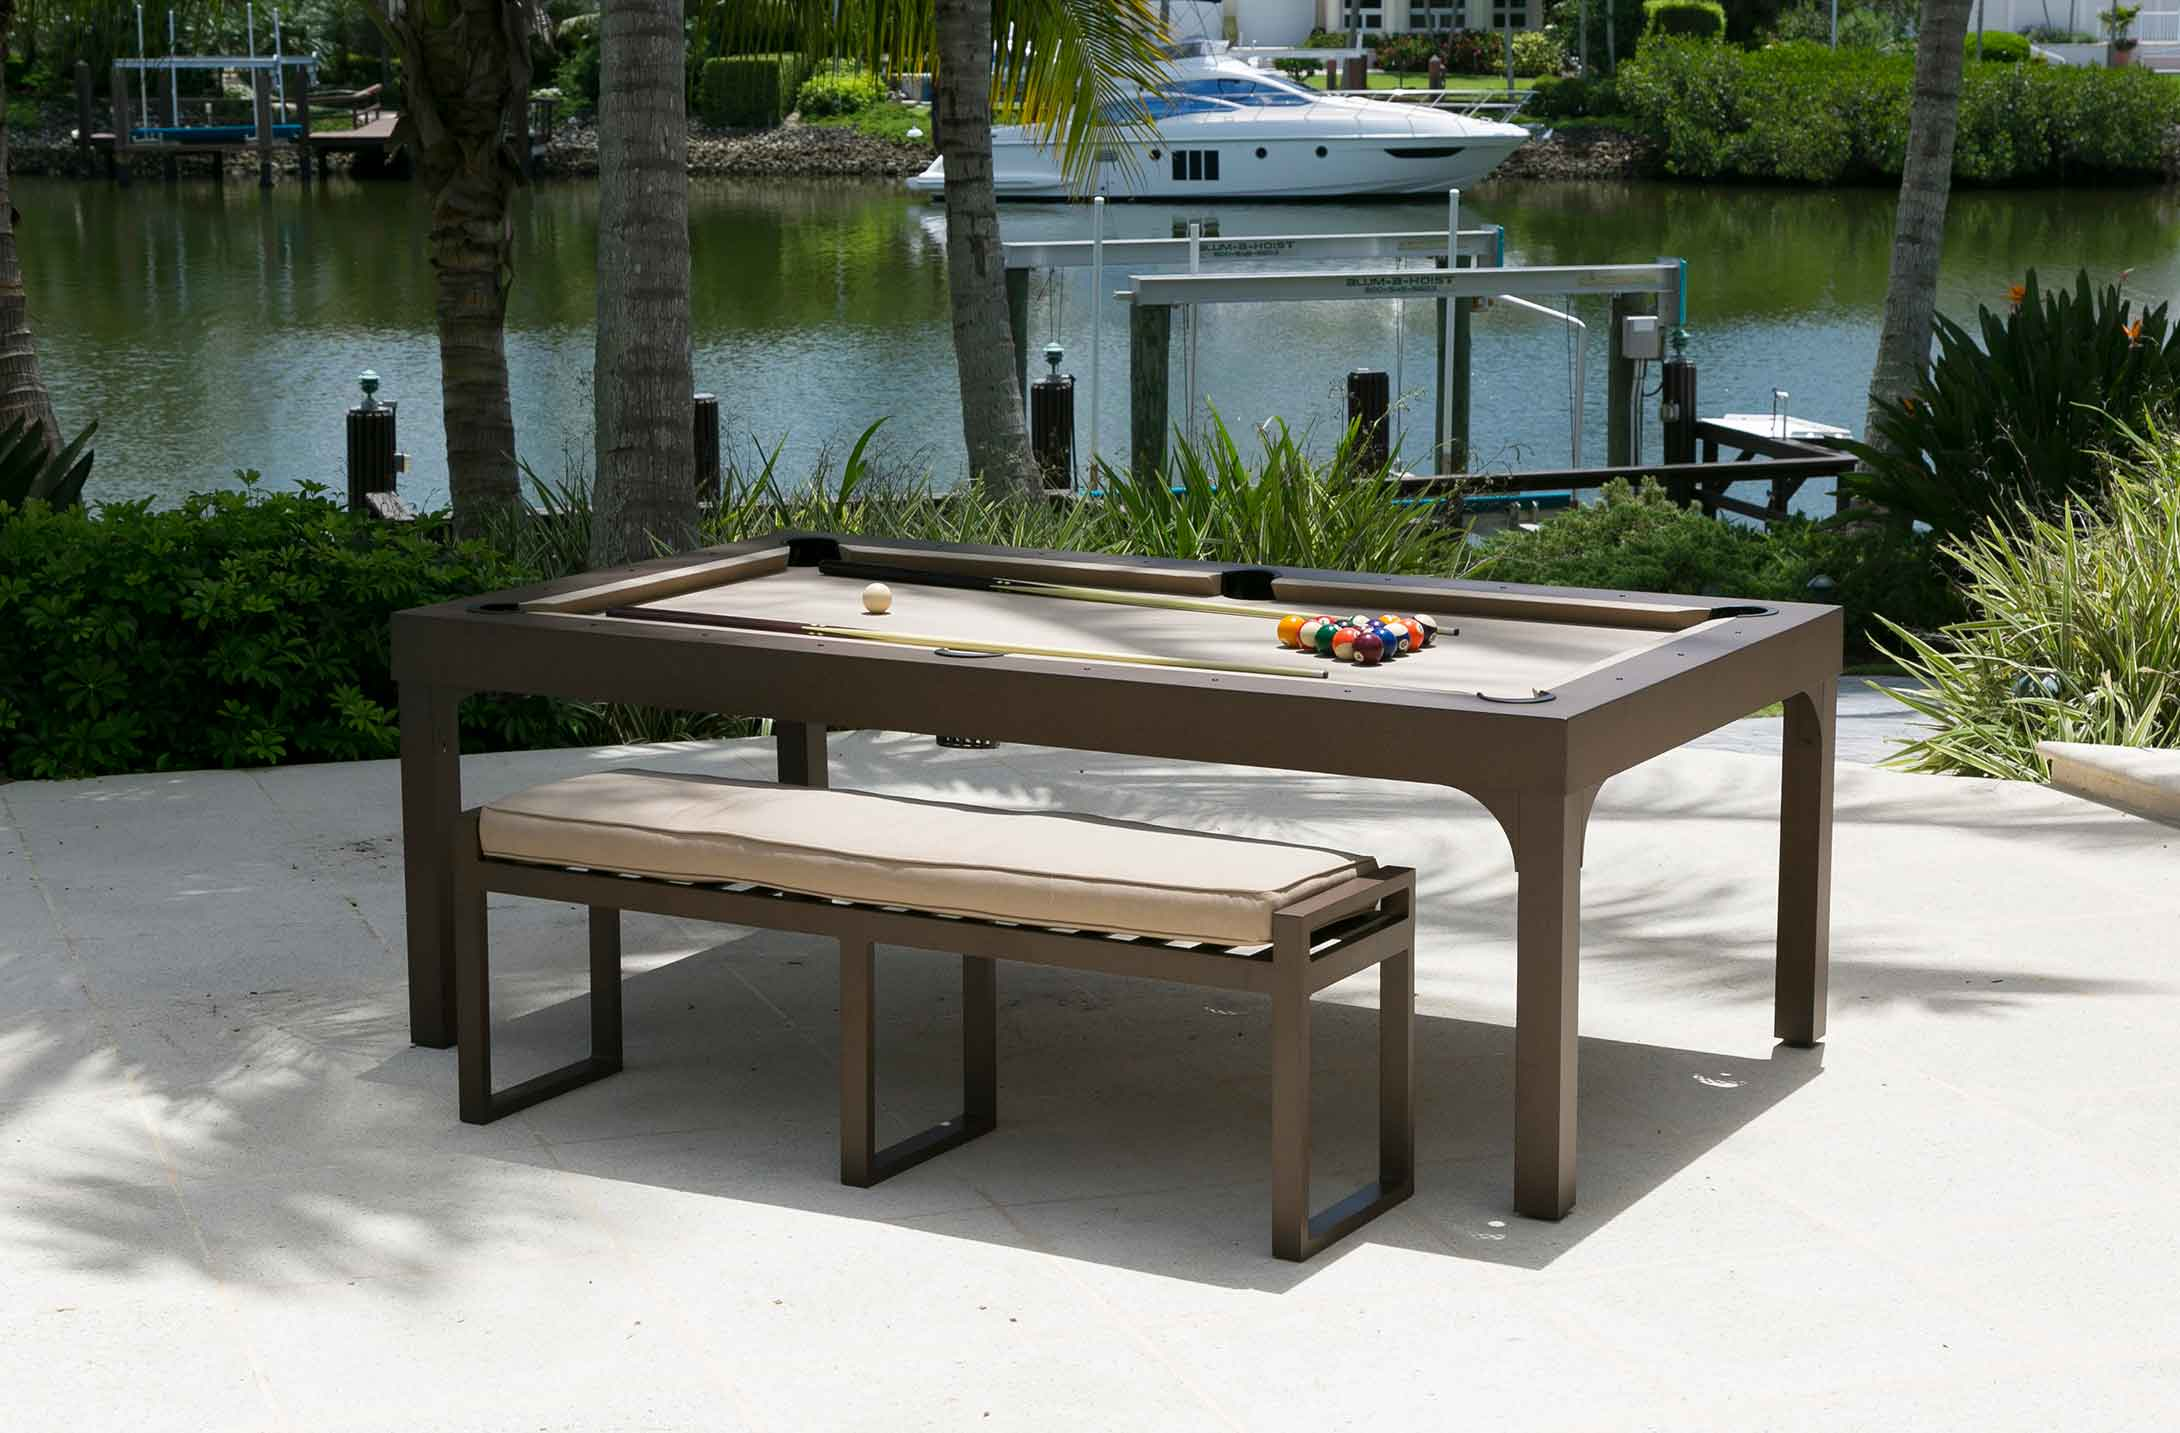 Brown and Beige Balcony outdoor pool table with custom all weather bench for seating